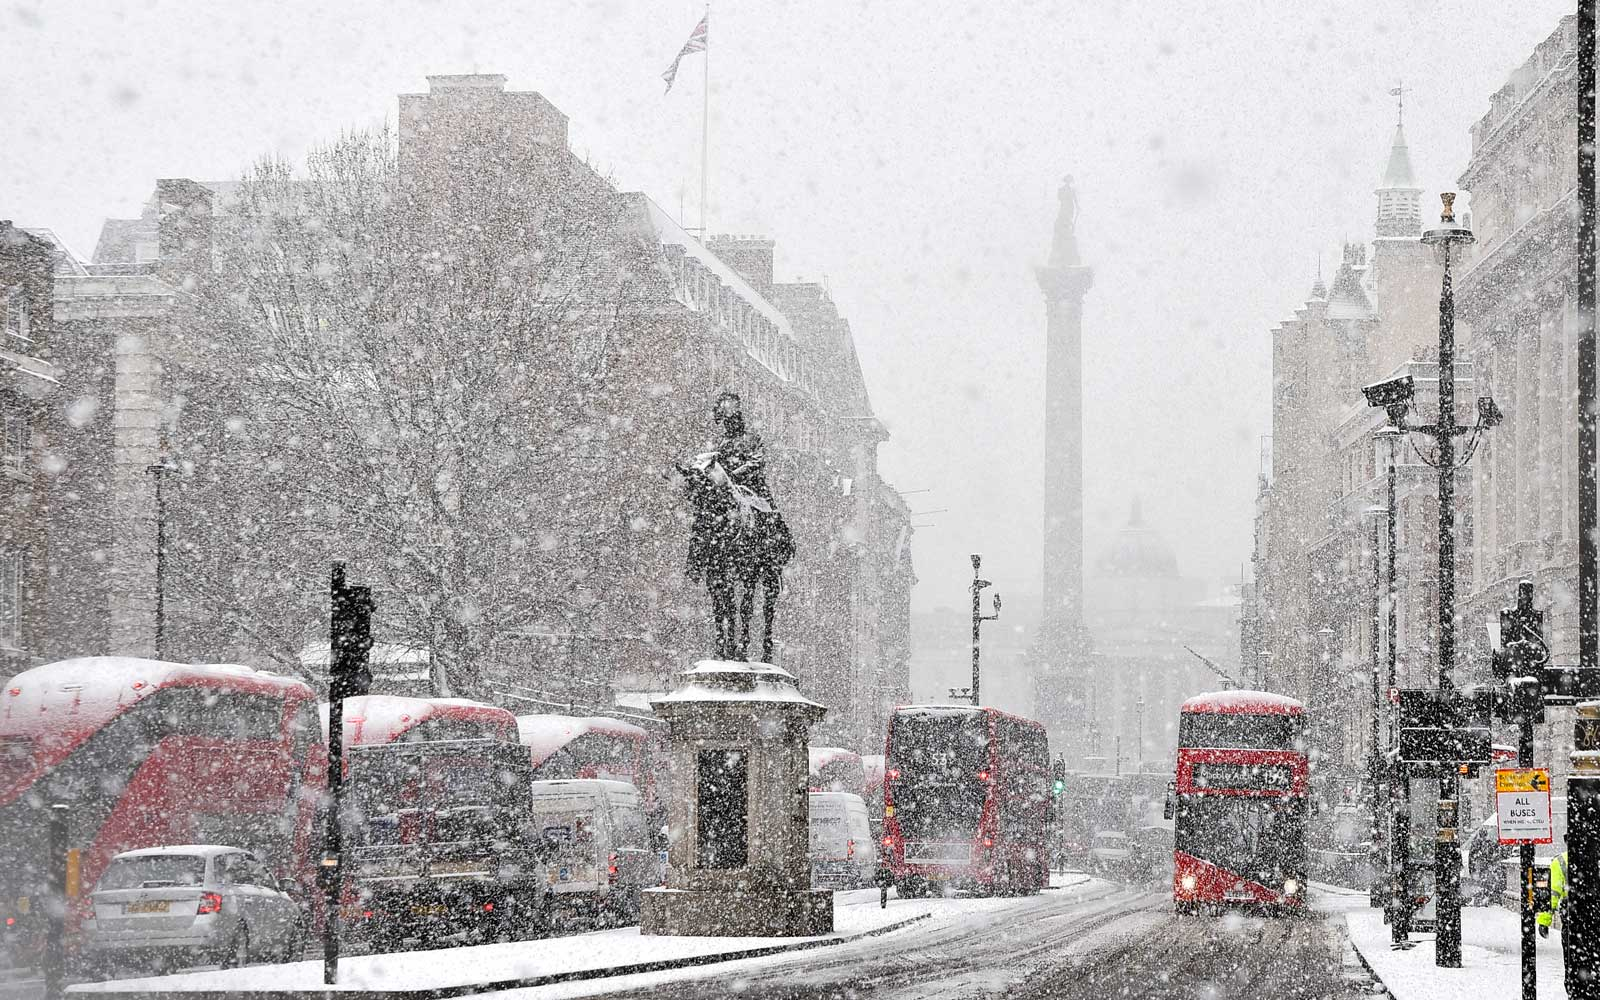 View of Westminster area during a heavy snowfall, London on February 28, 2018.